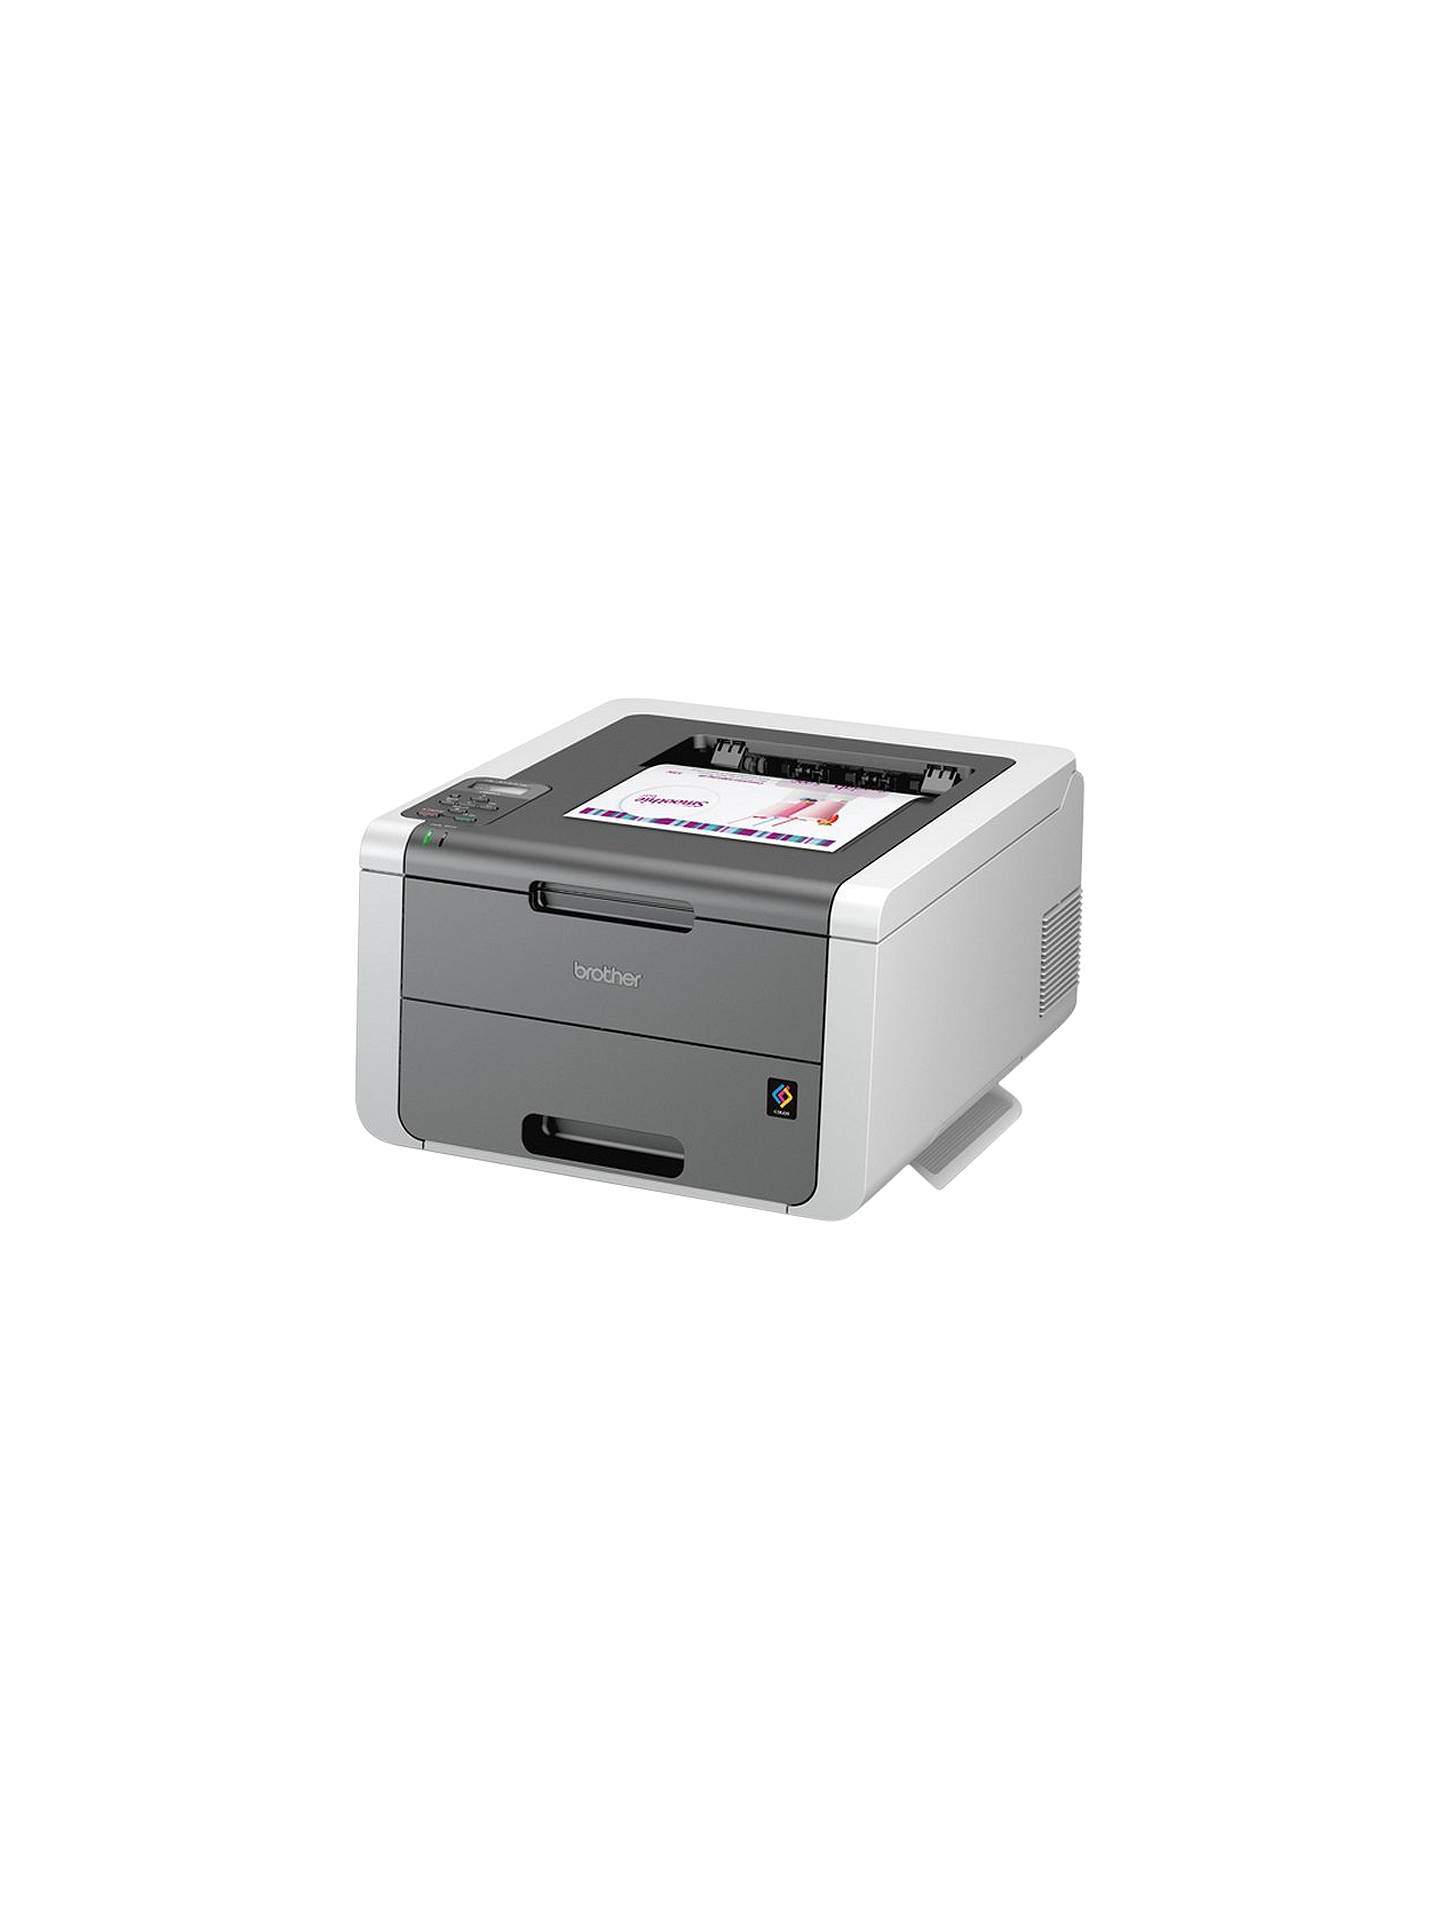 how to make wireless printer online